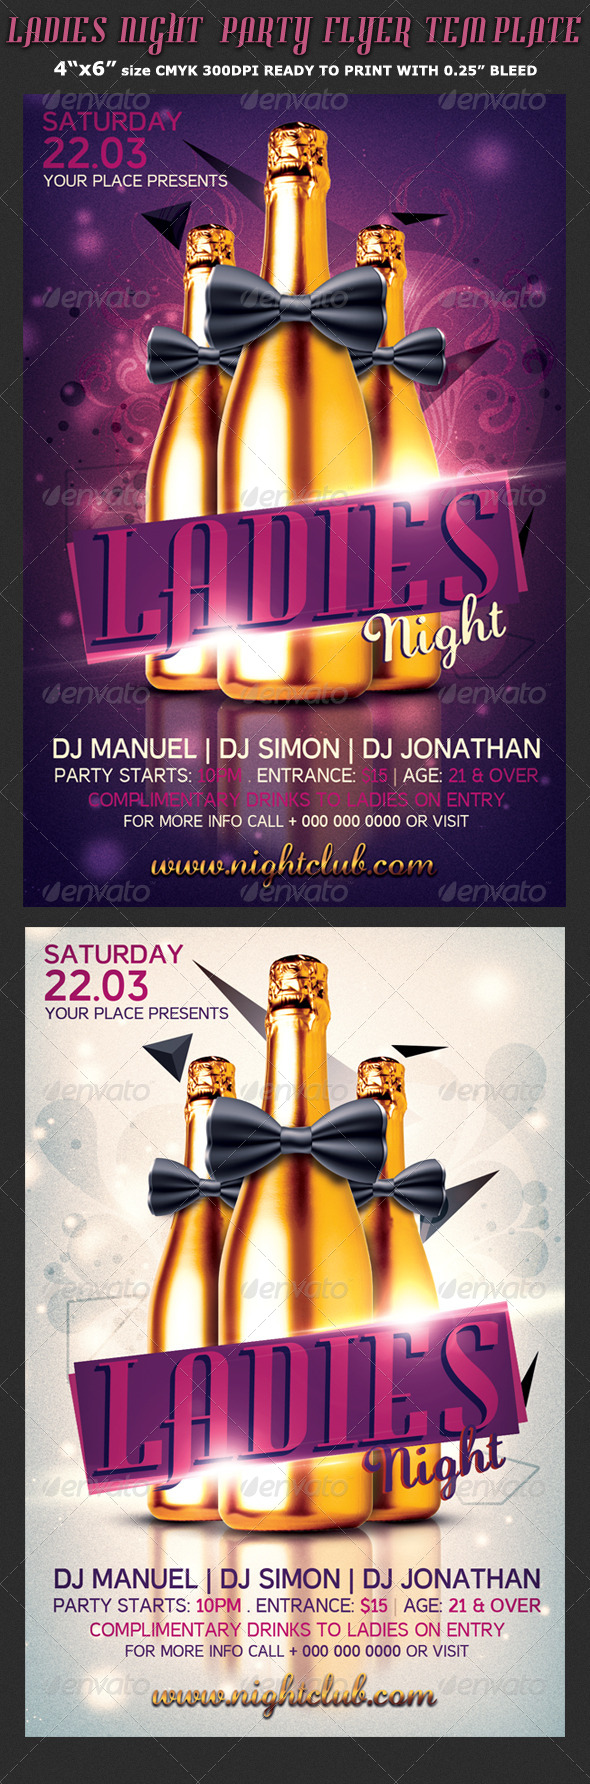 Ladies Night-Bachelorette Flyer Template - Clubs & Parties Events